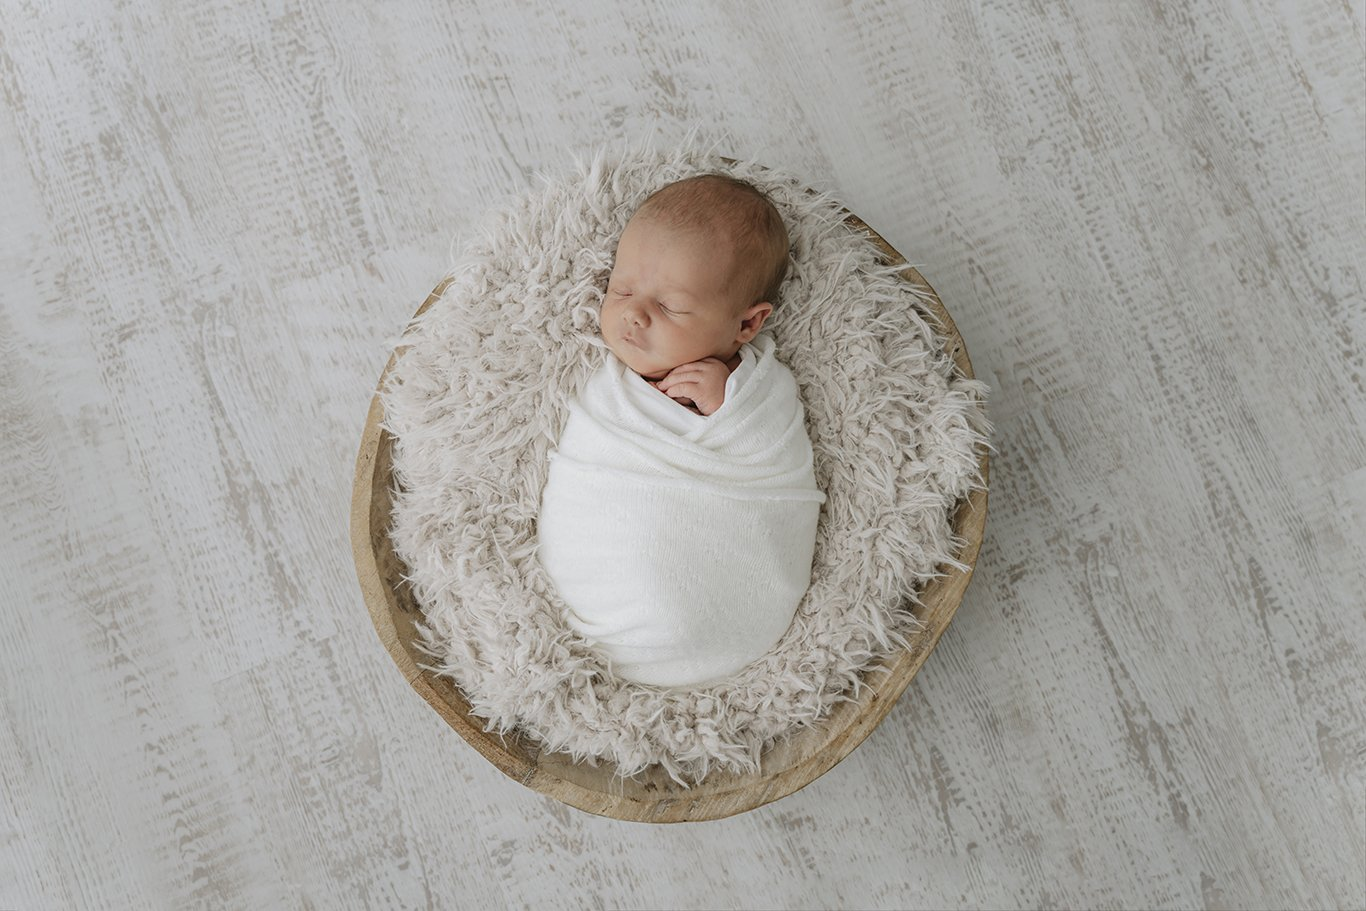 newborn baby wrapped up